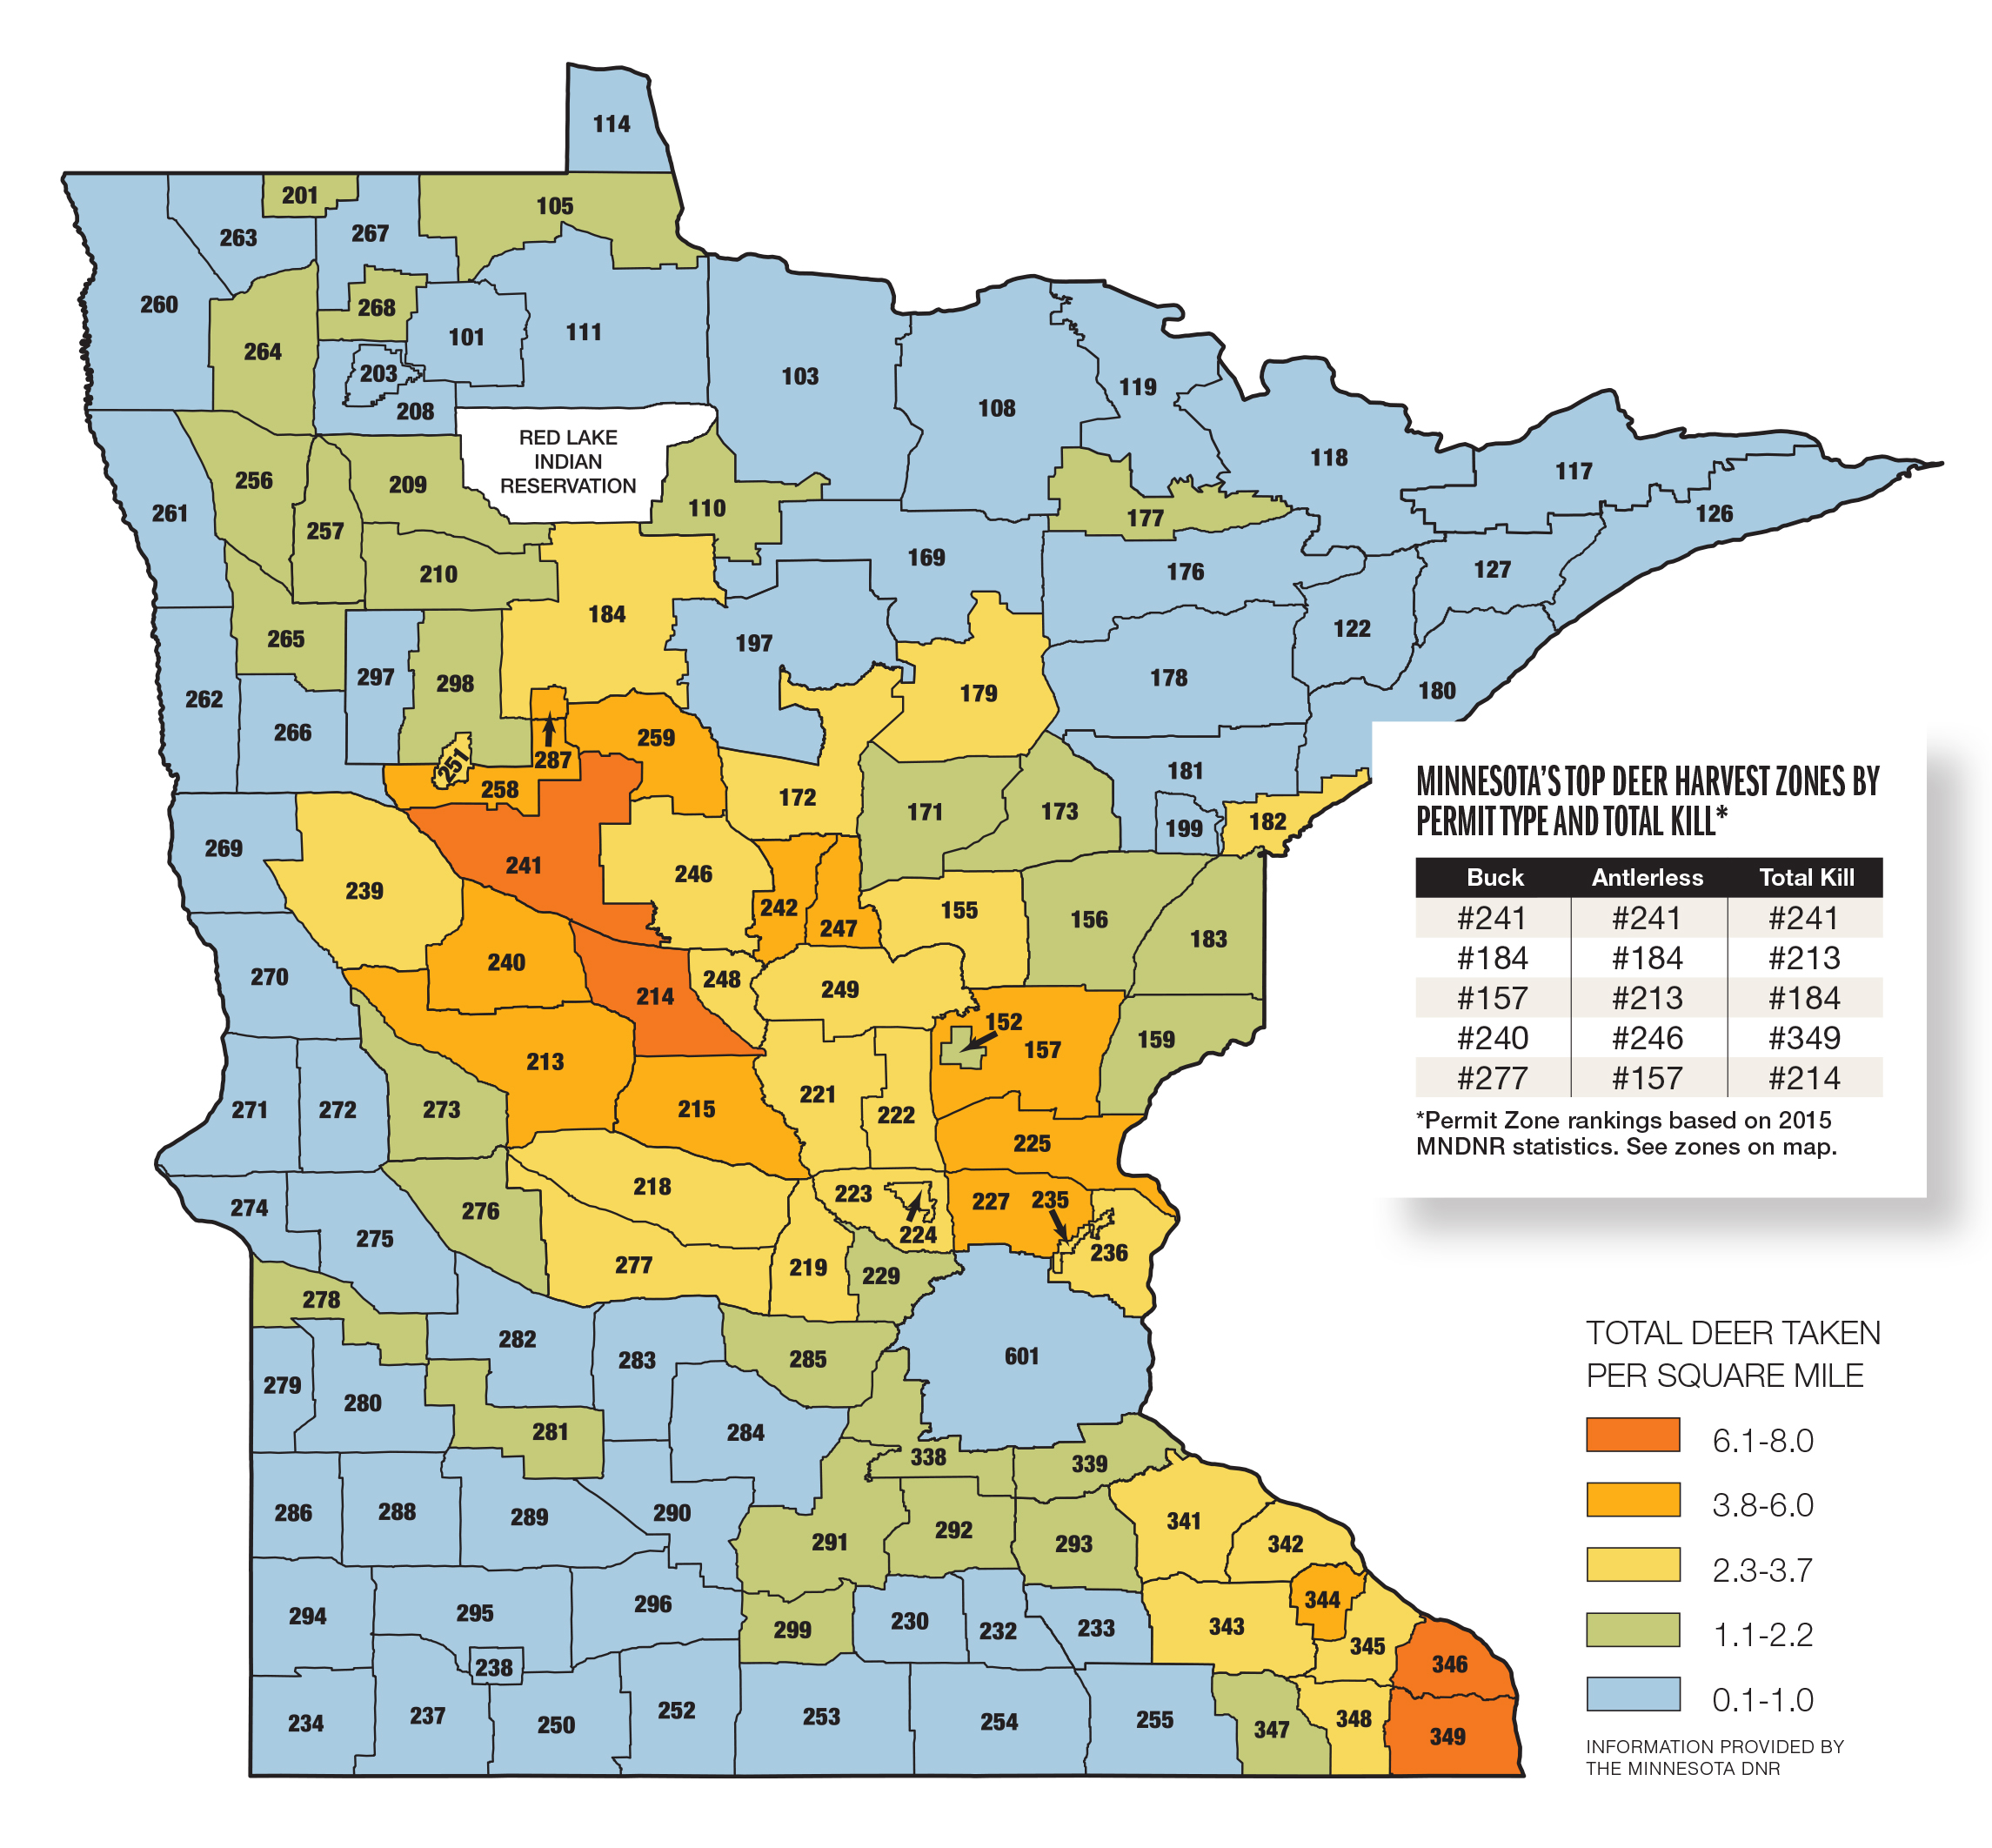 Minnesota Deer Forecast for 2016